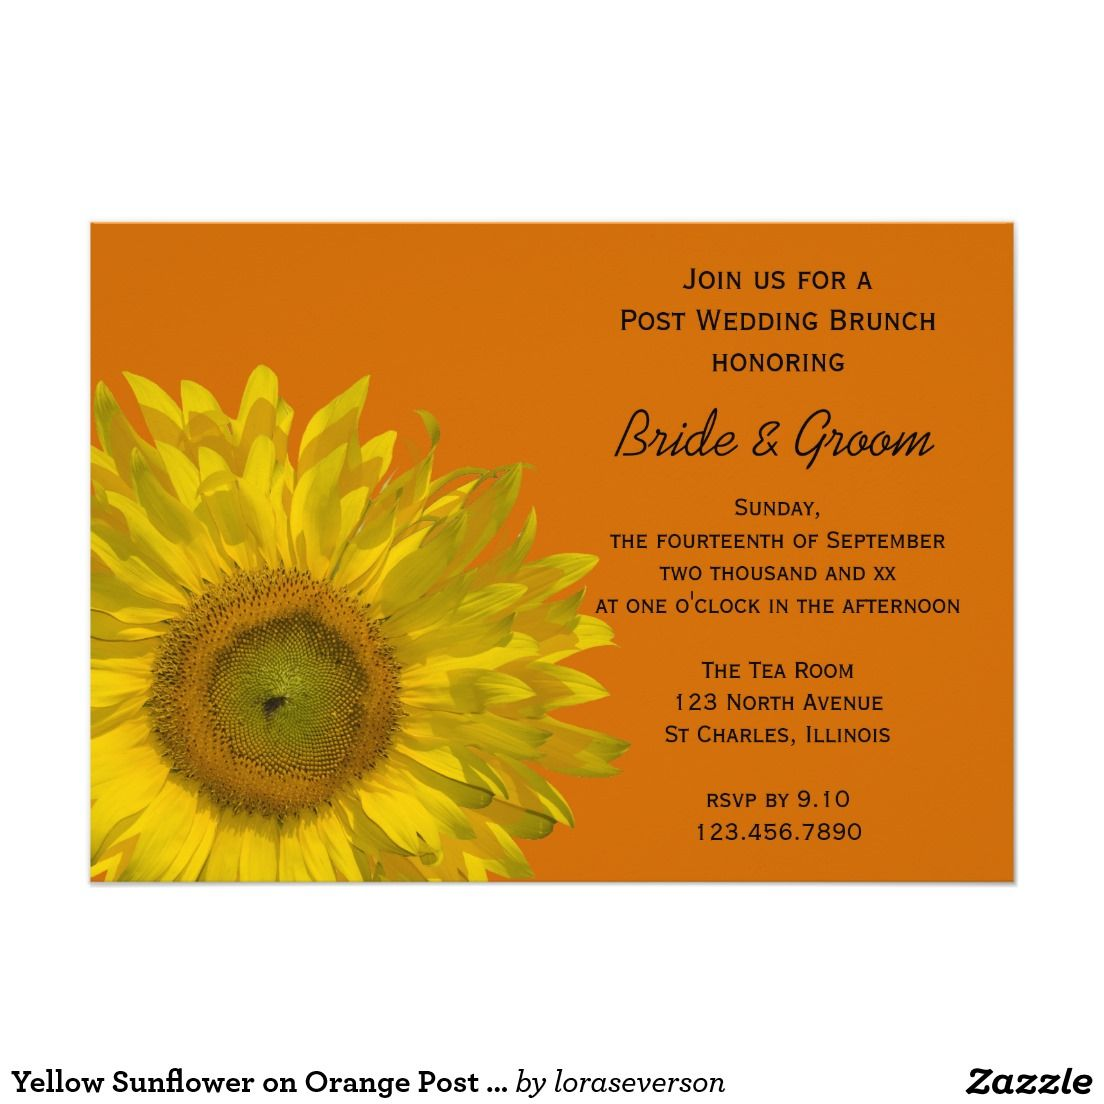 Yellow Sunflower On Orange Post Wedding Brunch Card Sunflowers